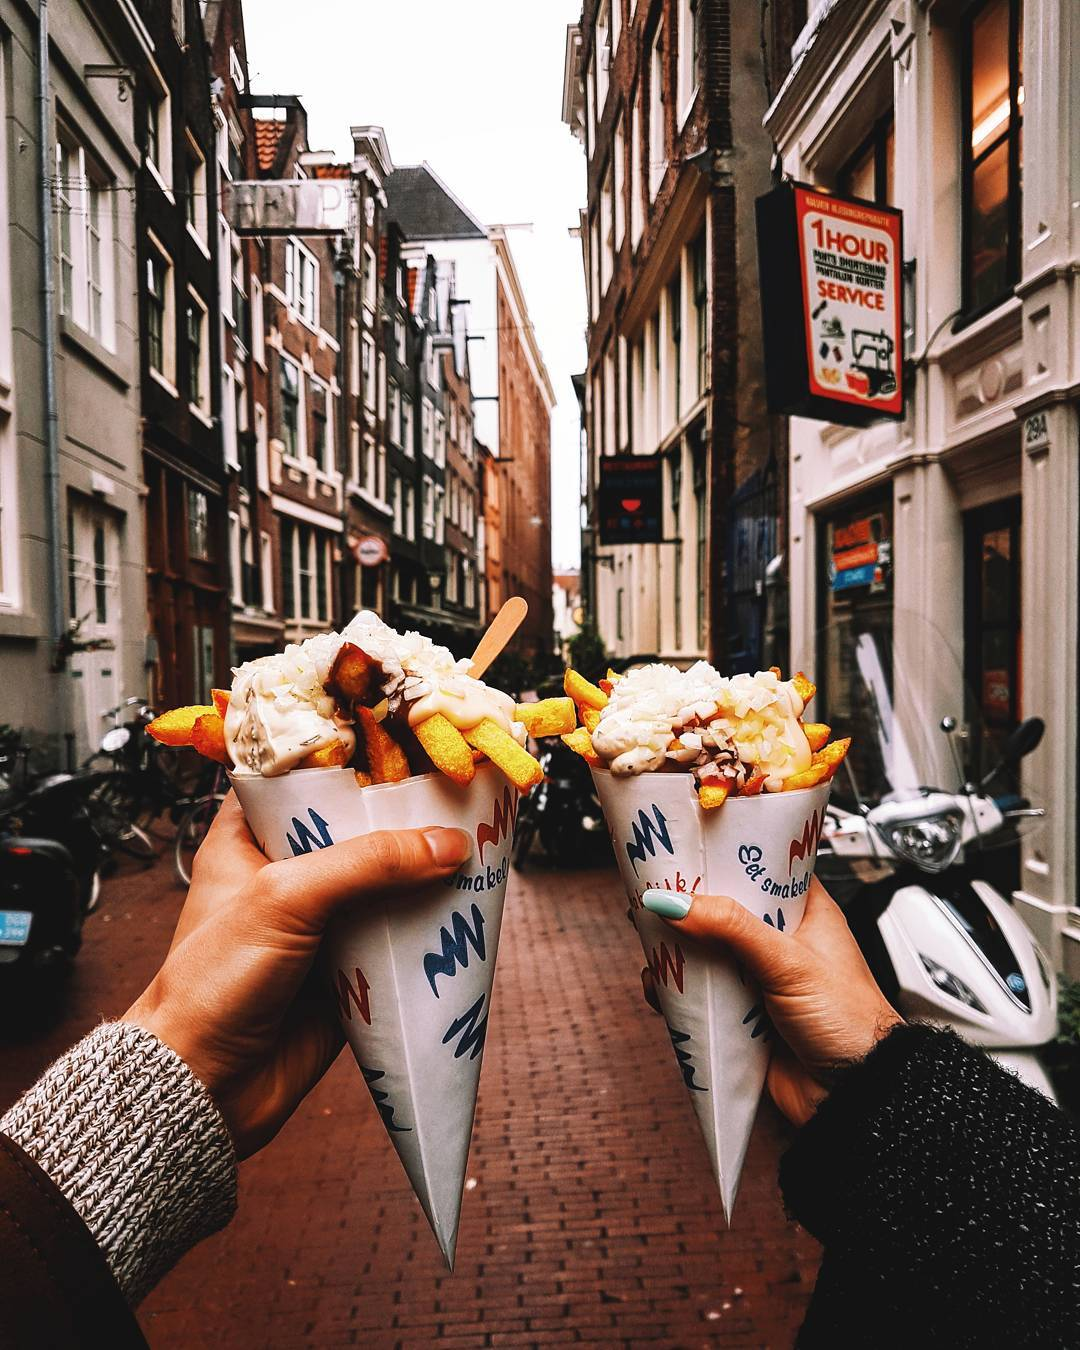 13 Things You Must Do In Amsterdam. Try Patat Frites. Whether it's your first time in the city or you have been to Amsterdam numerous times, you truly haven't experienced the city until you do these activities. #Amsterdam #Travel #Traveler #Netherlands